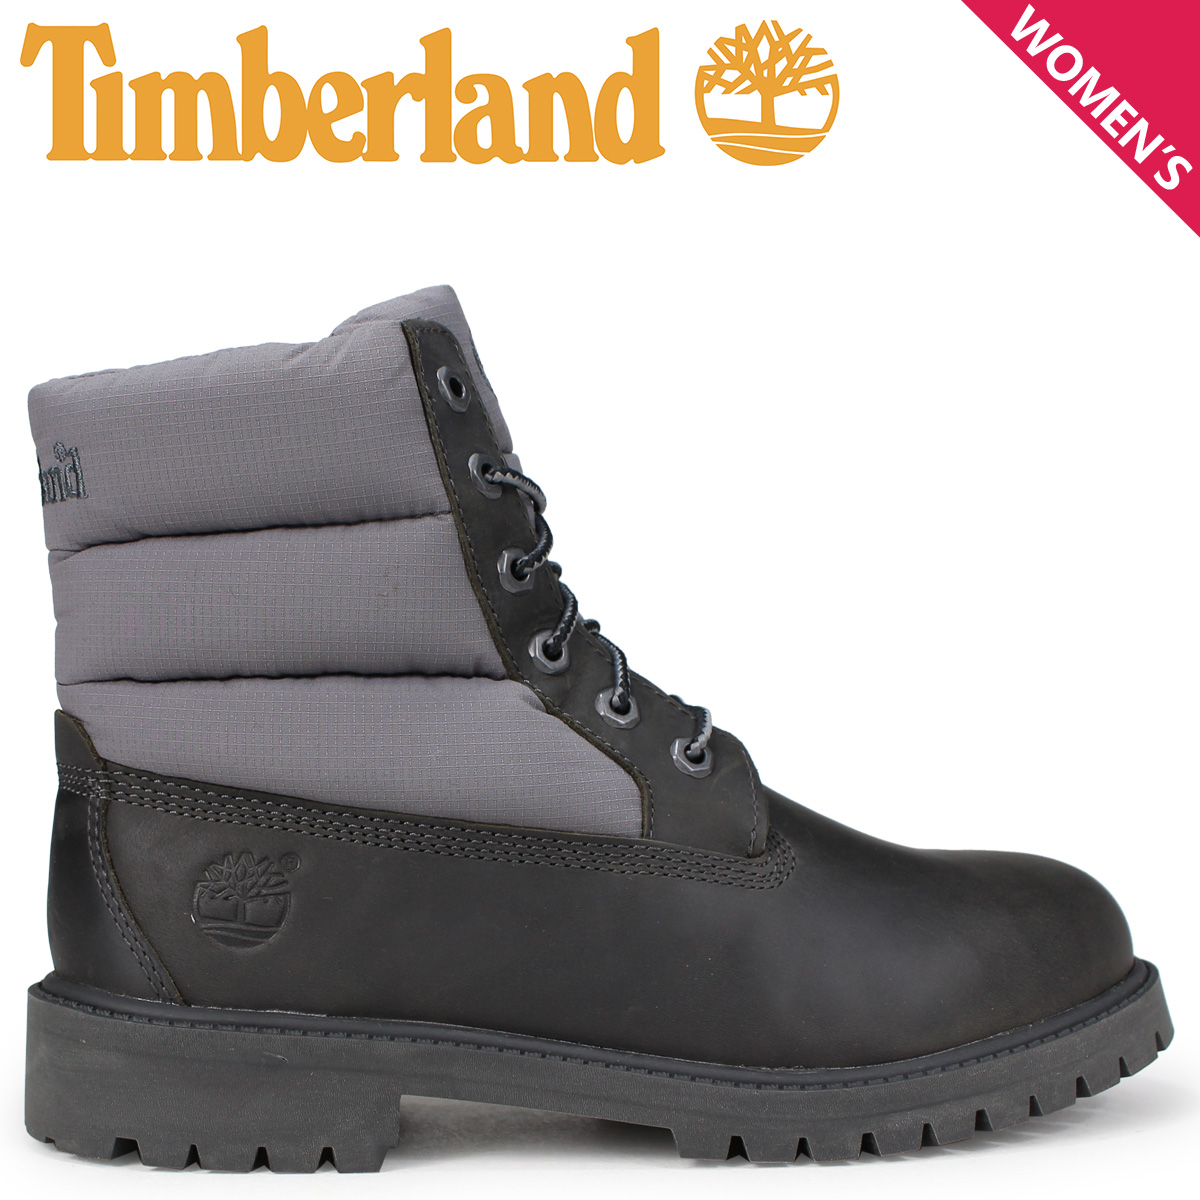 Timberland 6 inch Premium Waterproof Junior's Grey Leather